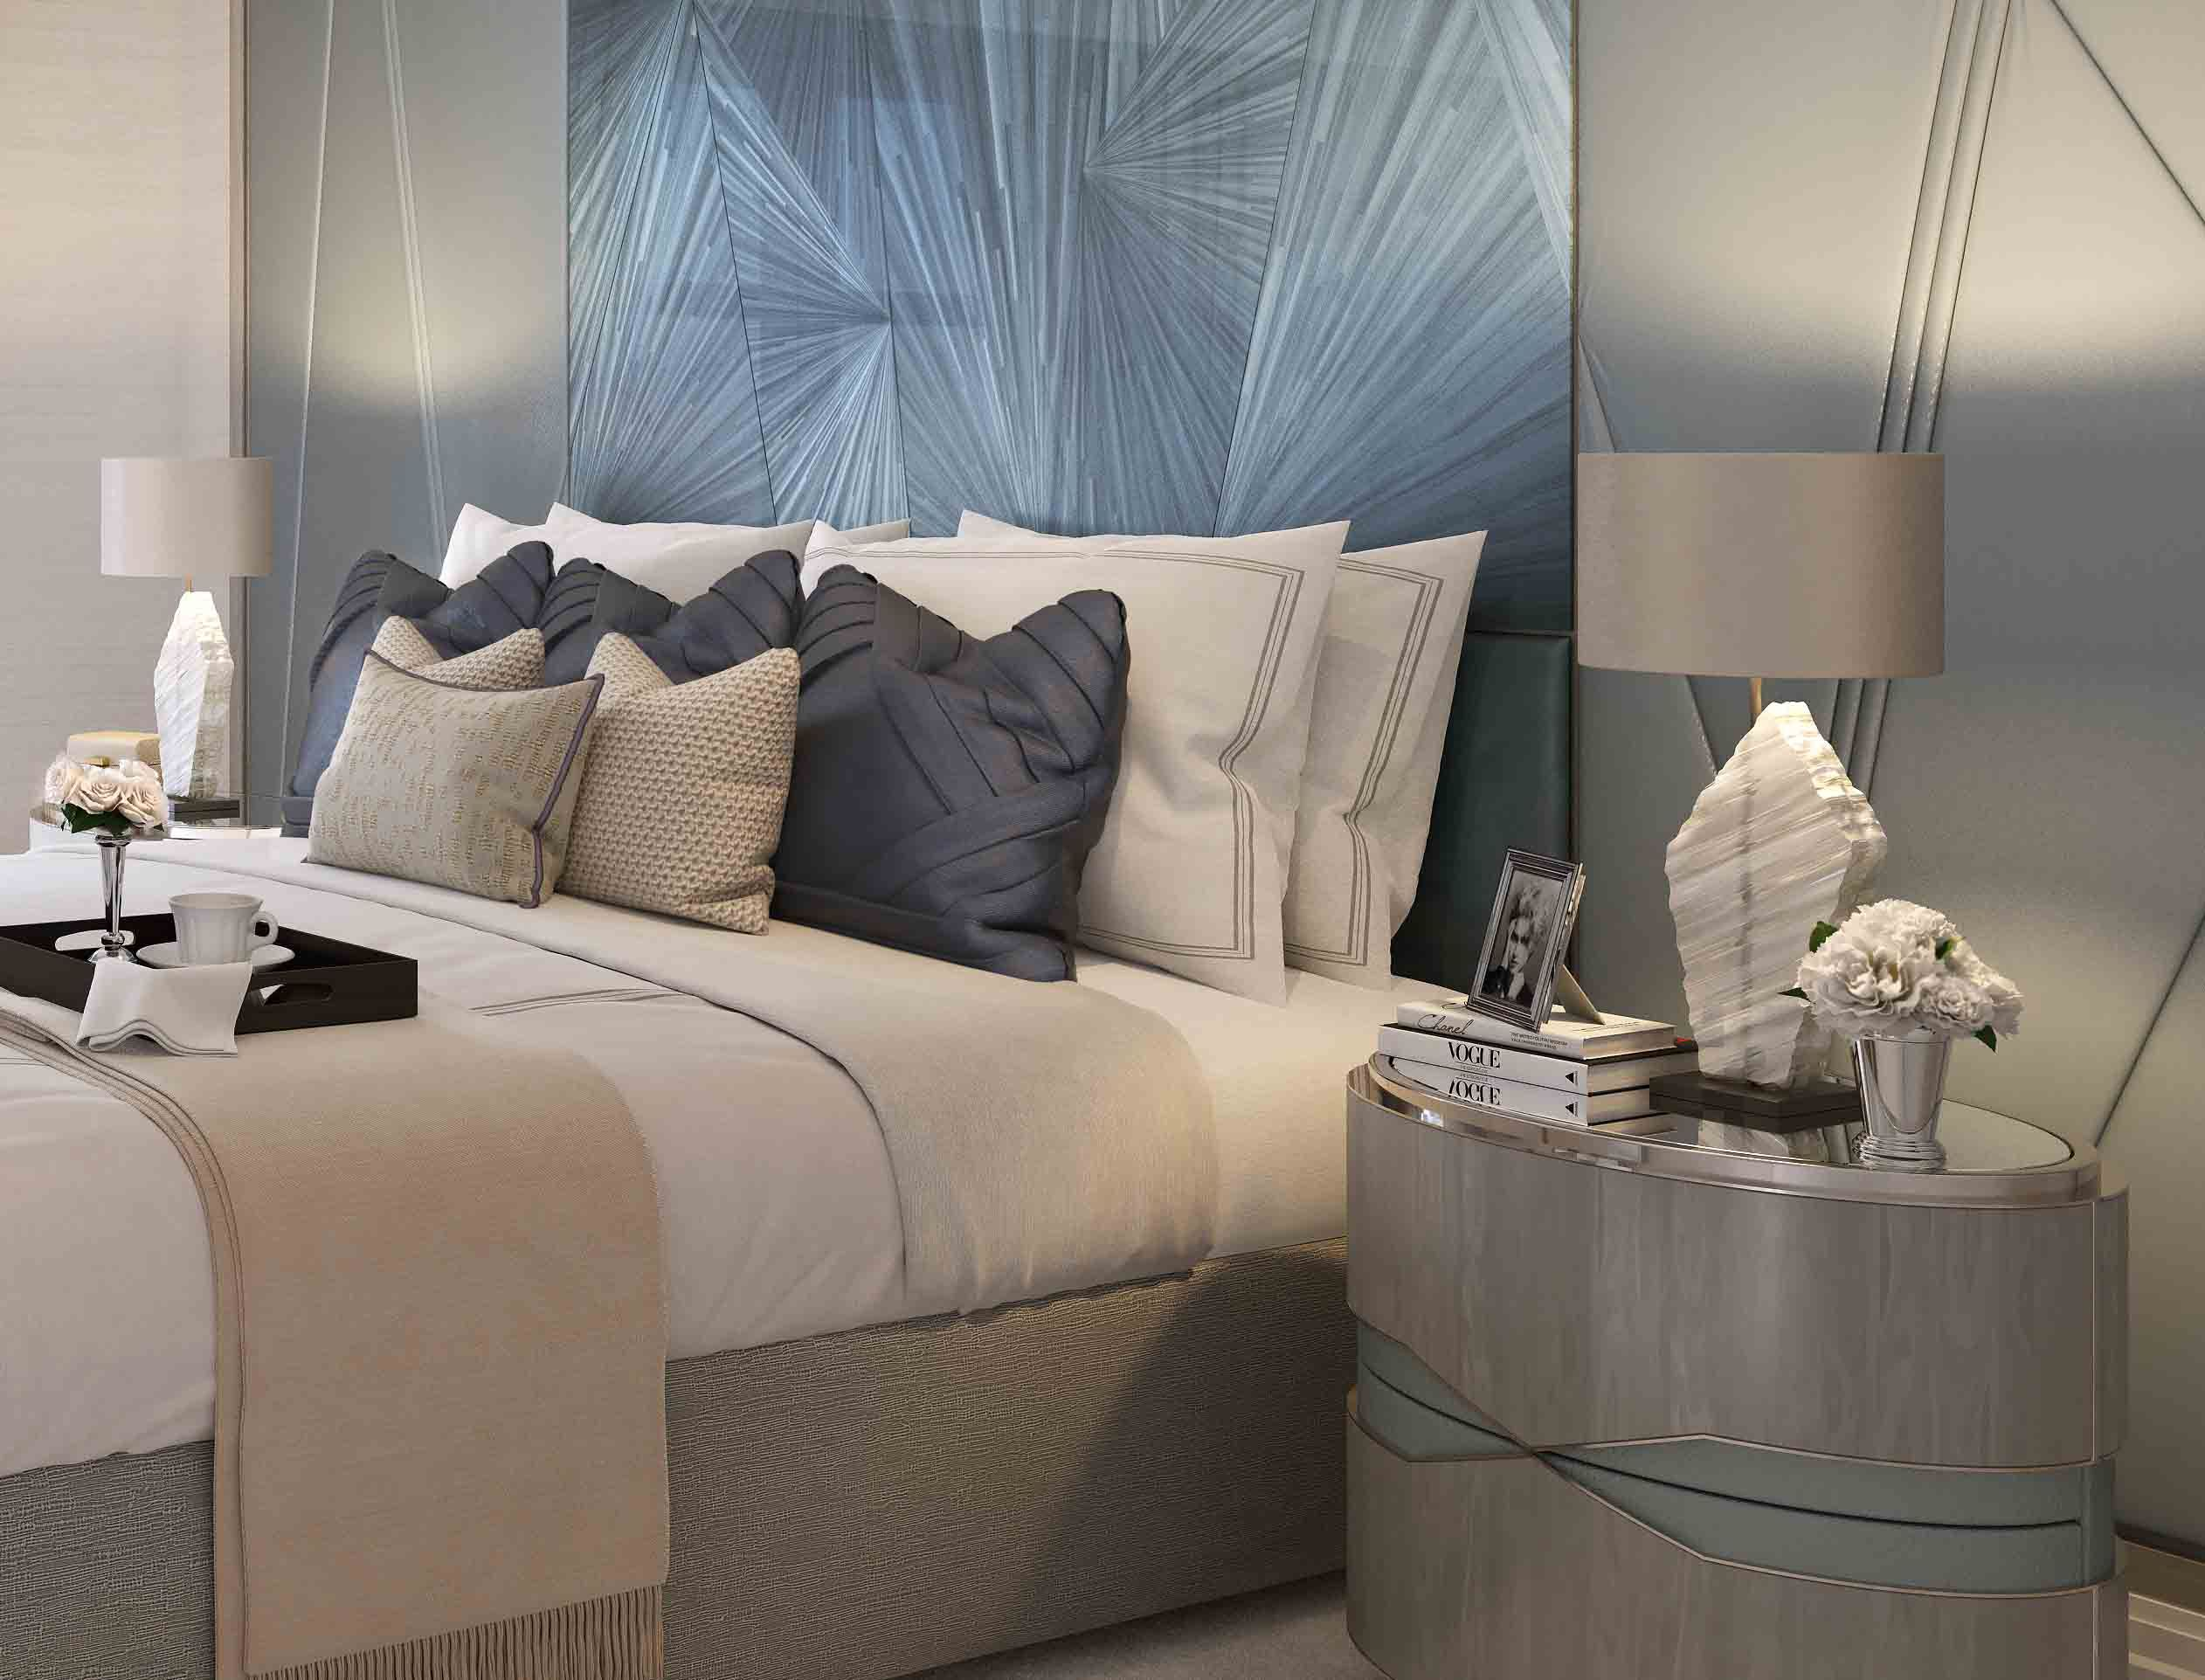 Read More About All The Interior Design Ideas At Covethouse